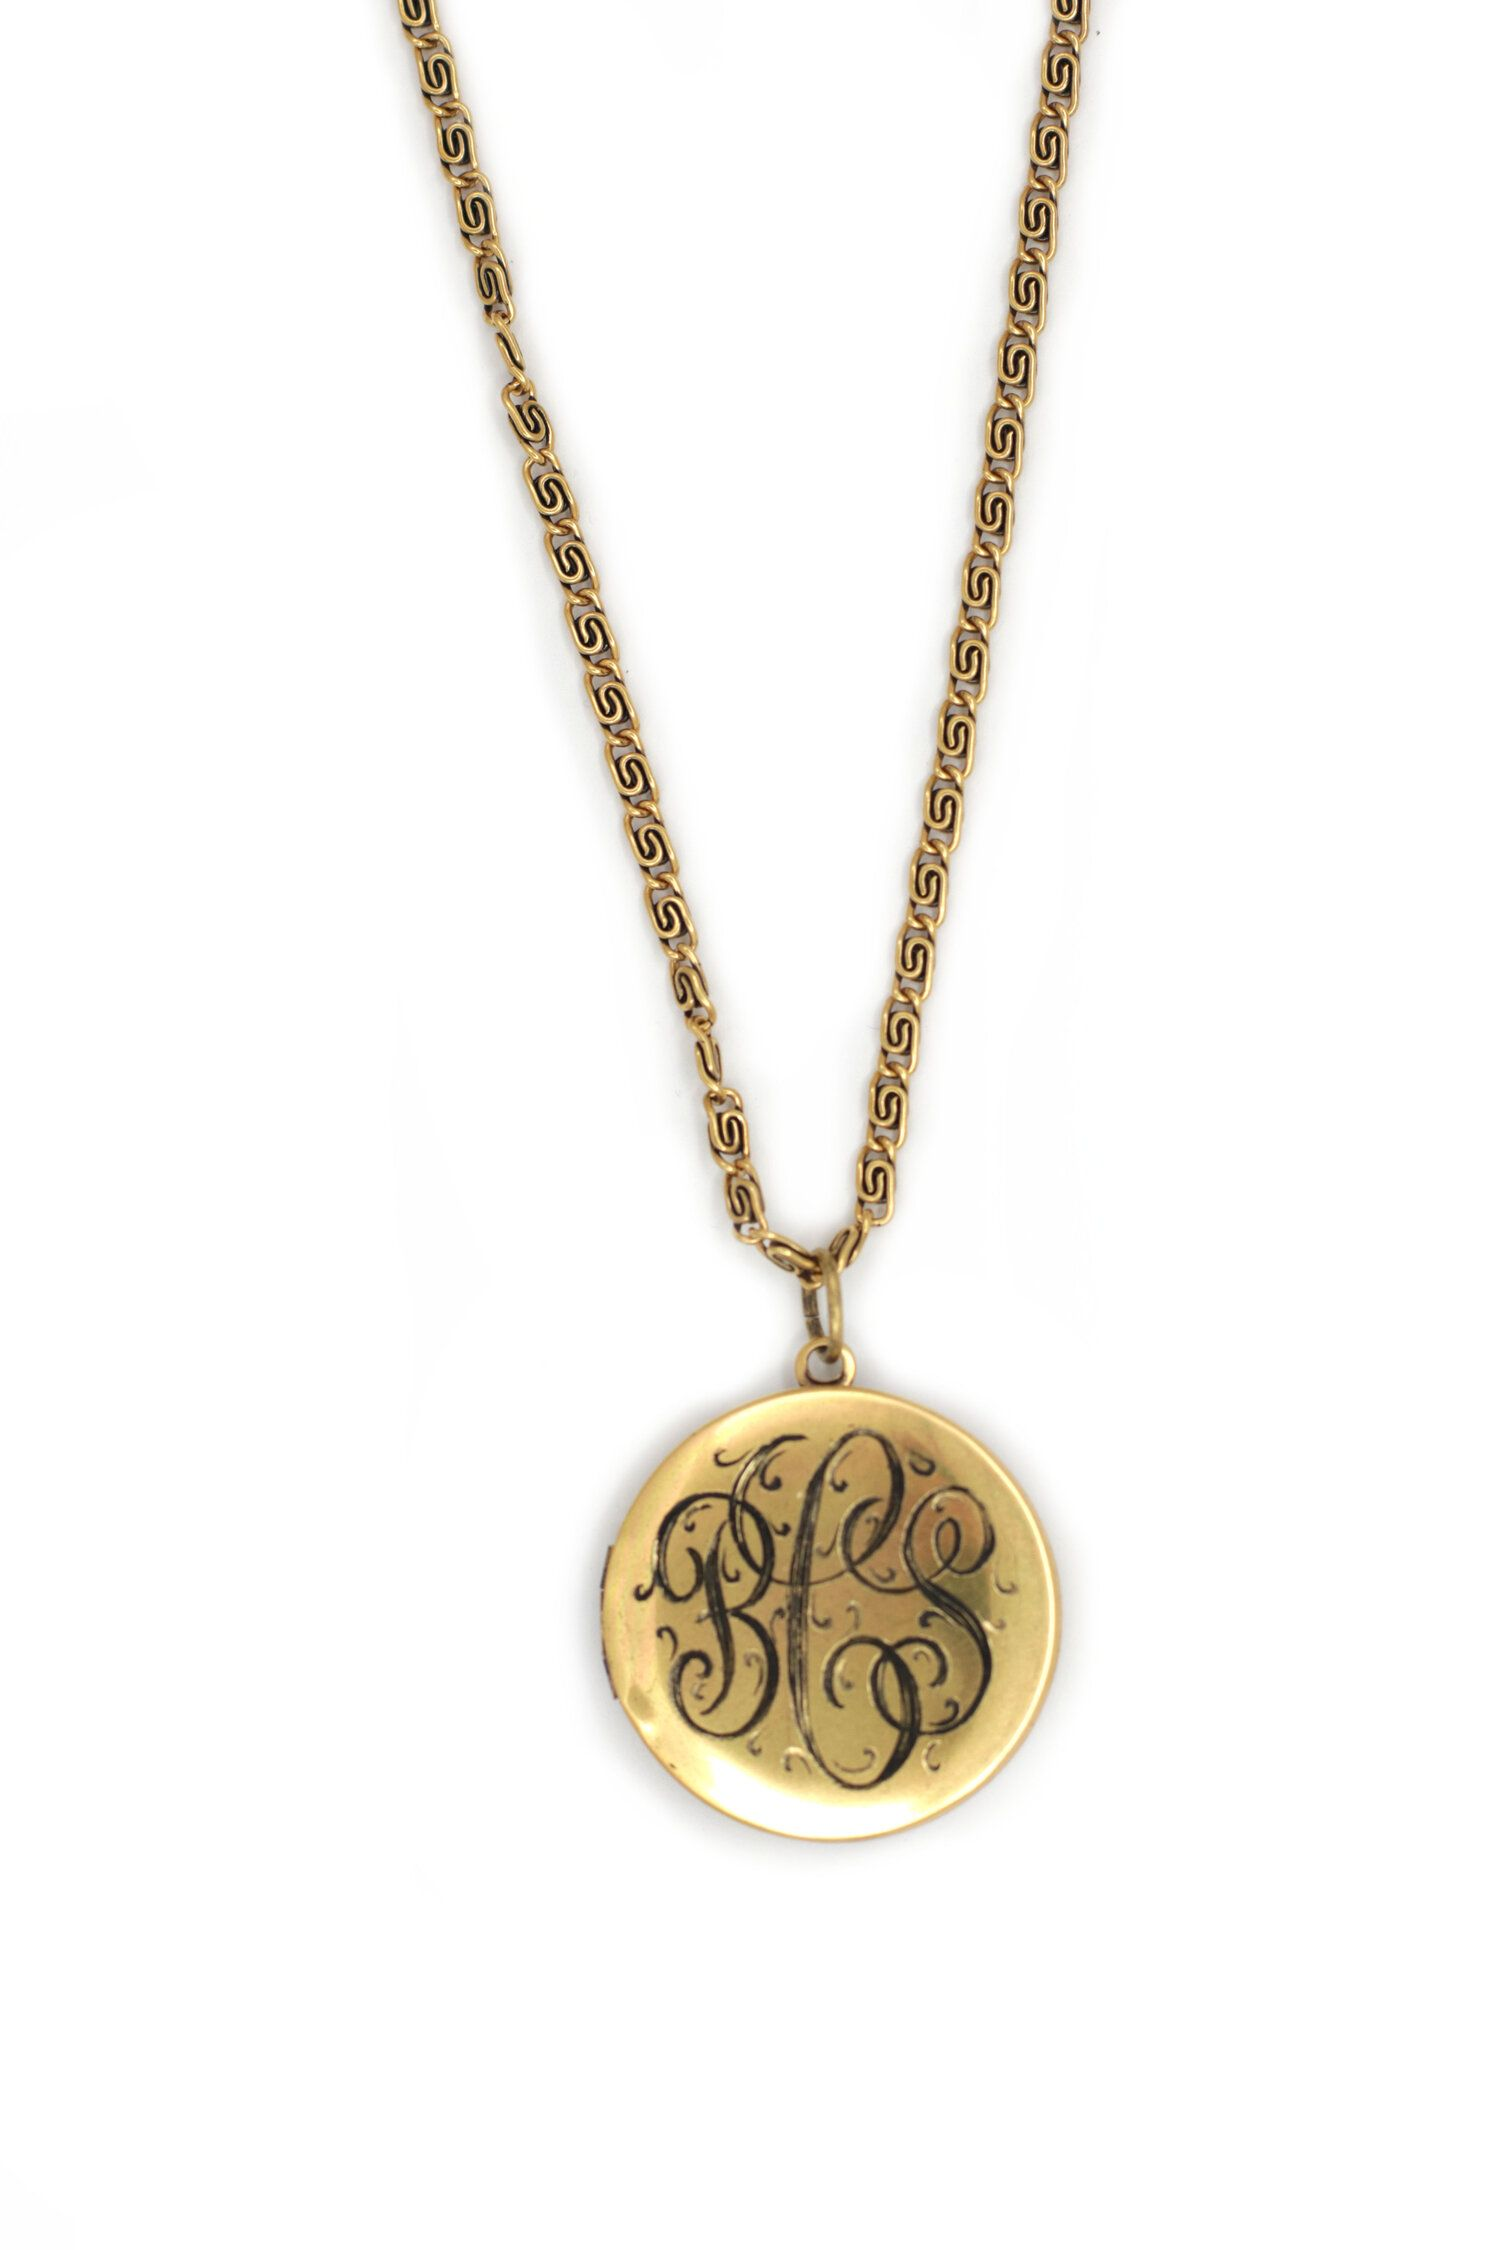 Rhodium-plated 925 Silver Secretly Yours Saying Pendant with 18 Necklace Jewels Obsession Saying Necklace